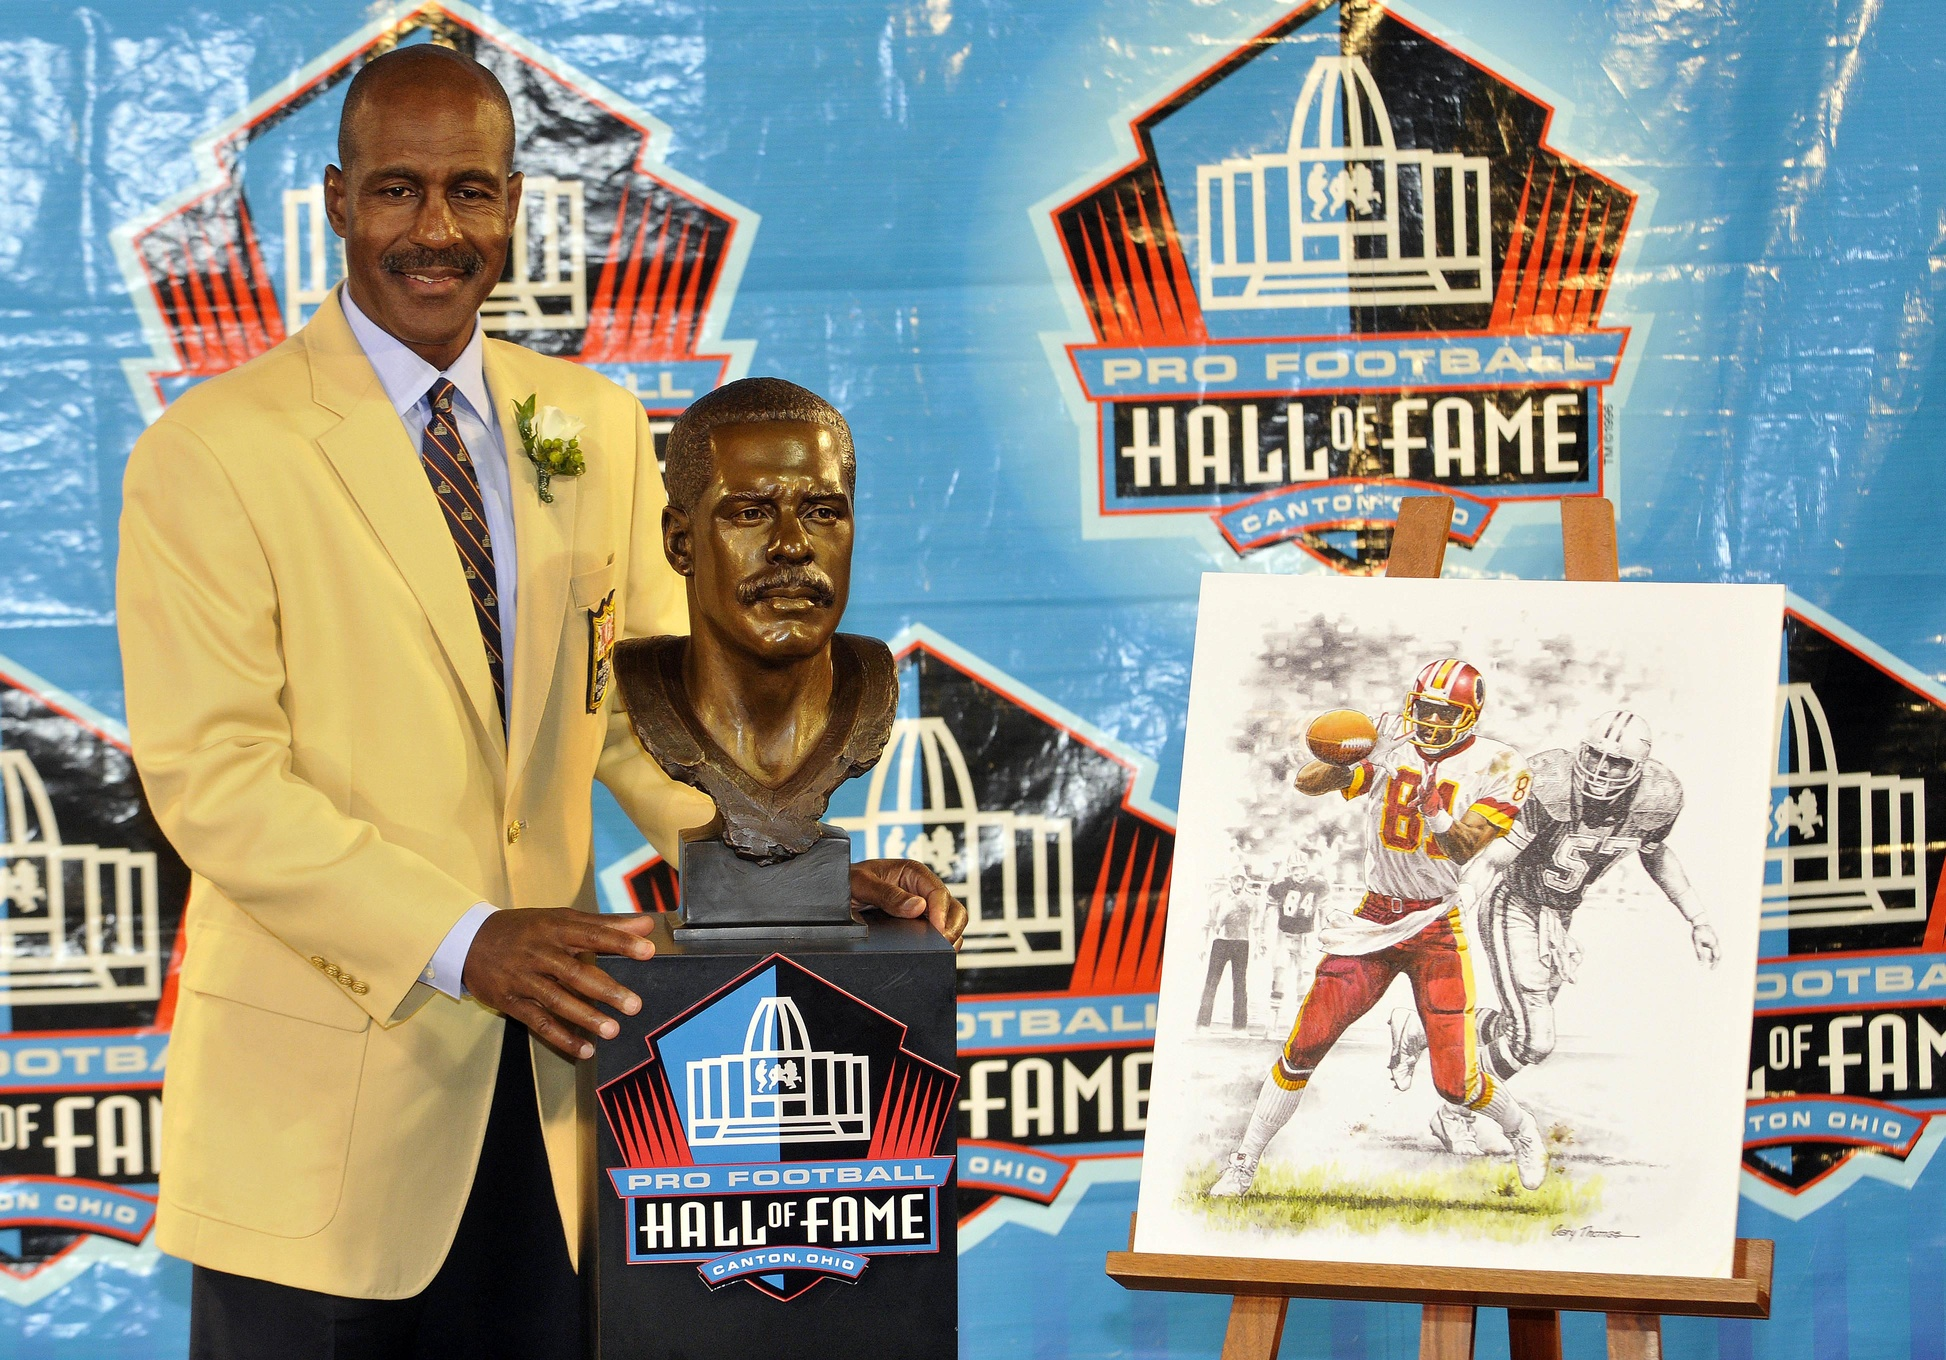 Hall of Fame WR Art Monk was one of 4,500 players suing the NFL.